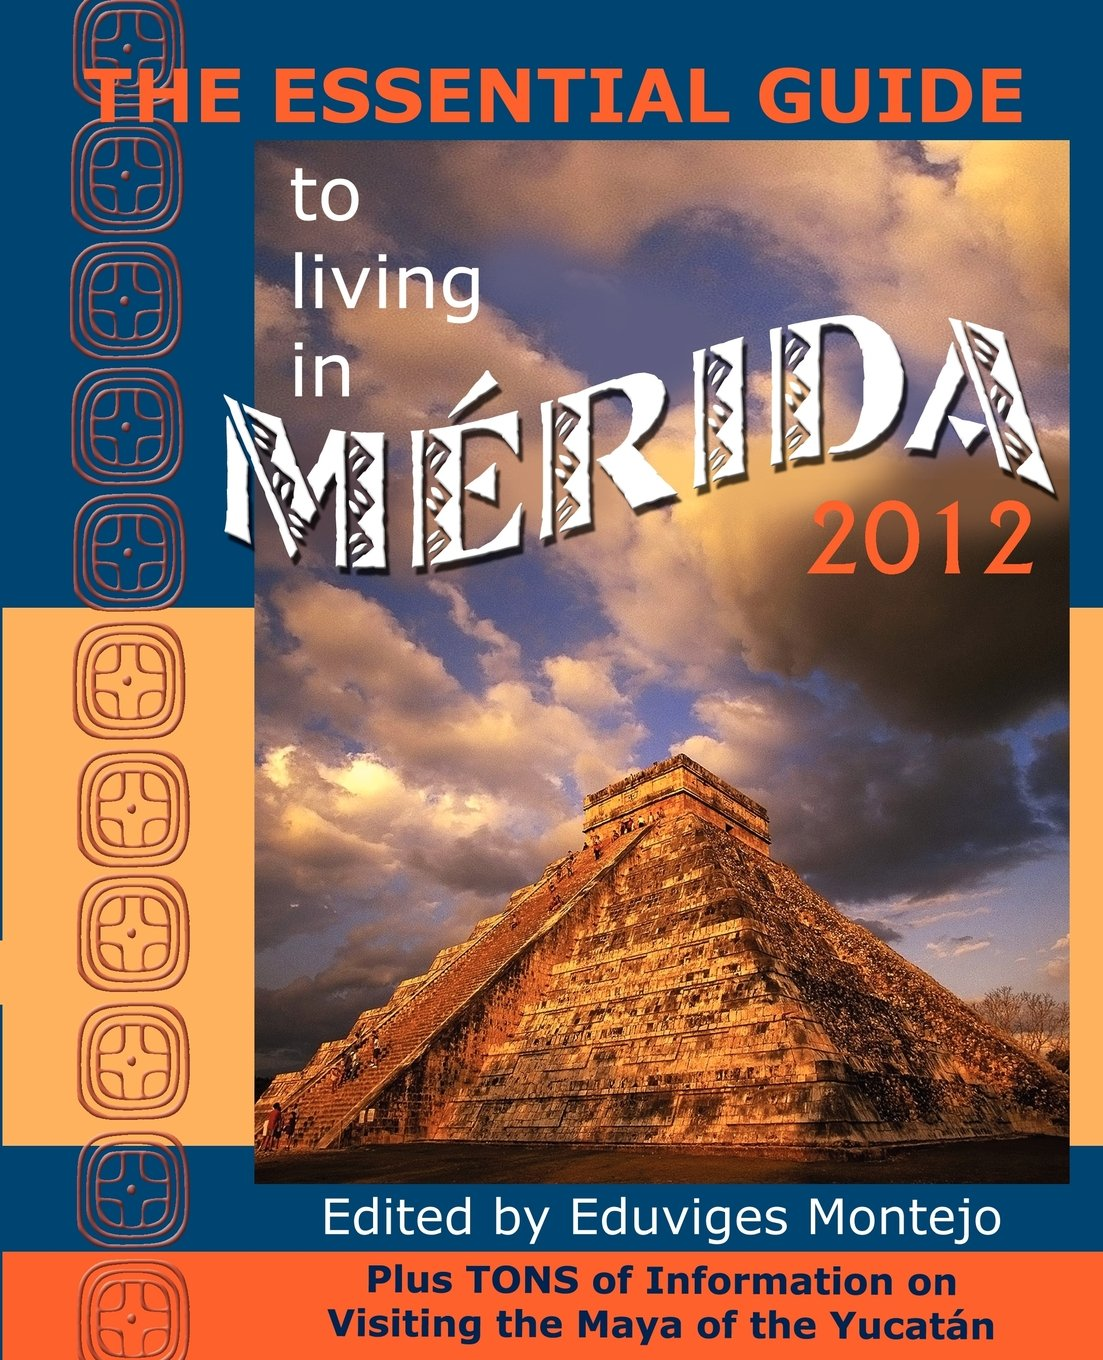 THE ESSENTIAL GUIDE TO LIVING IN MERIDA 2012: Plus Tons of Information on Visiting the Maya of the Yucatán